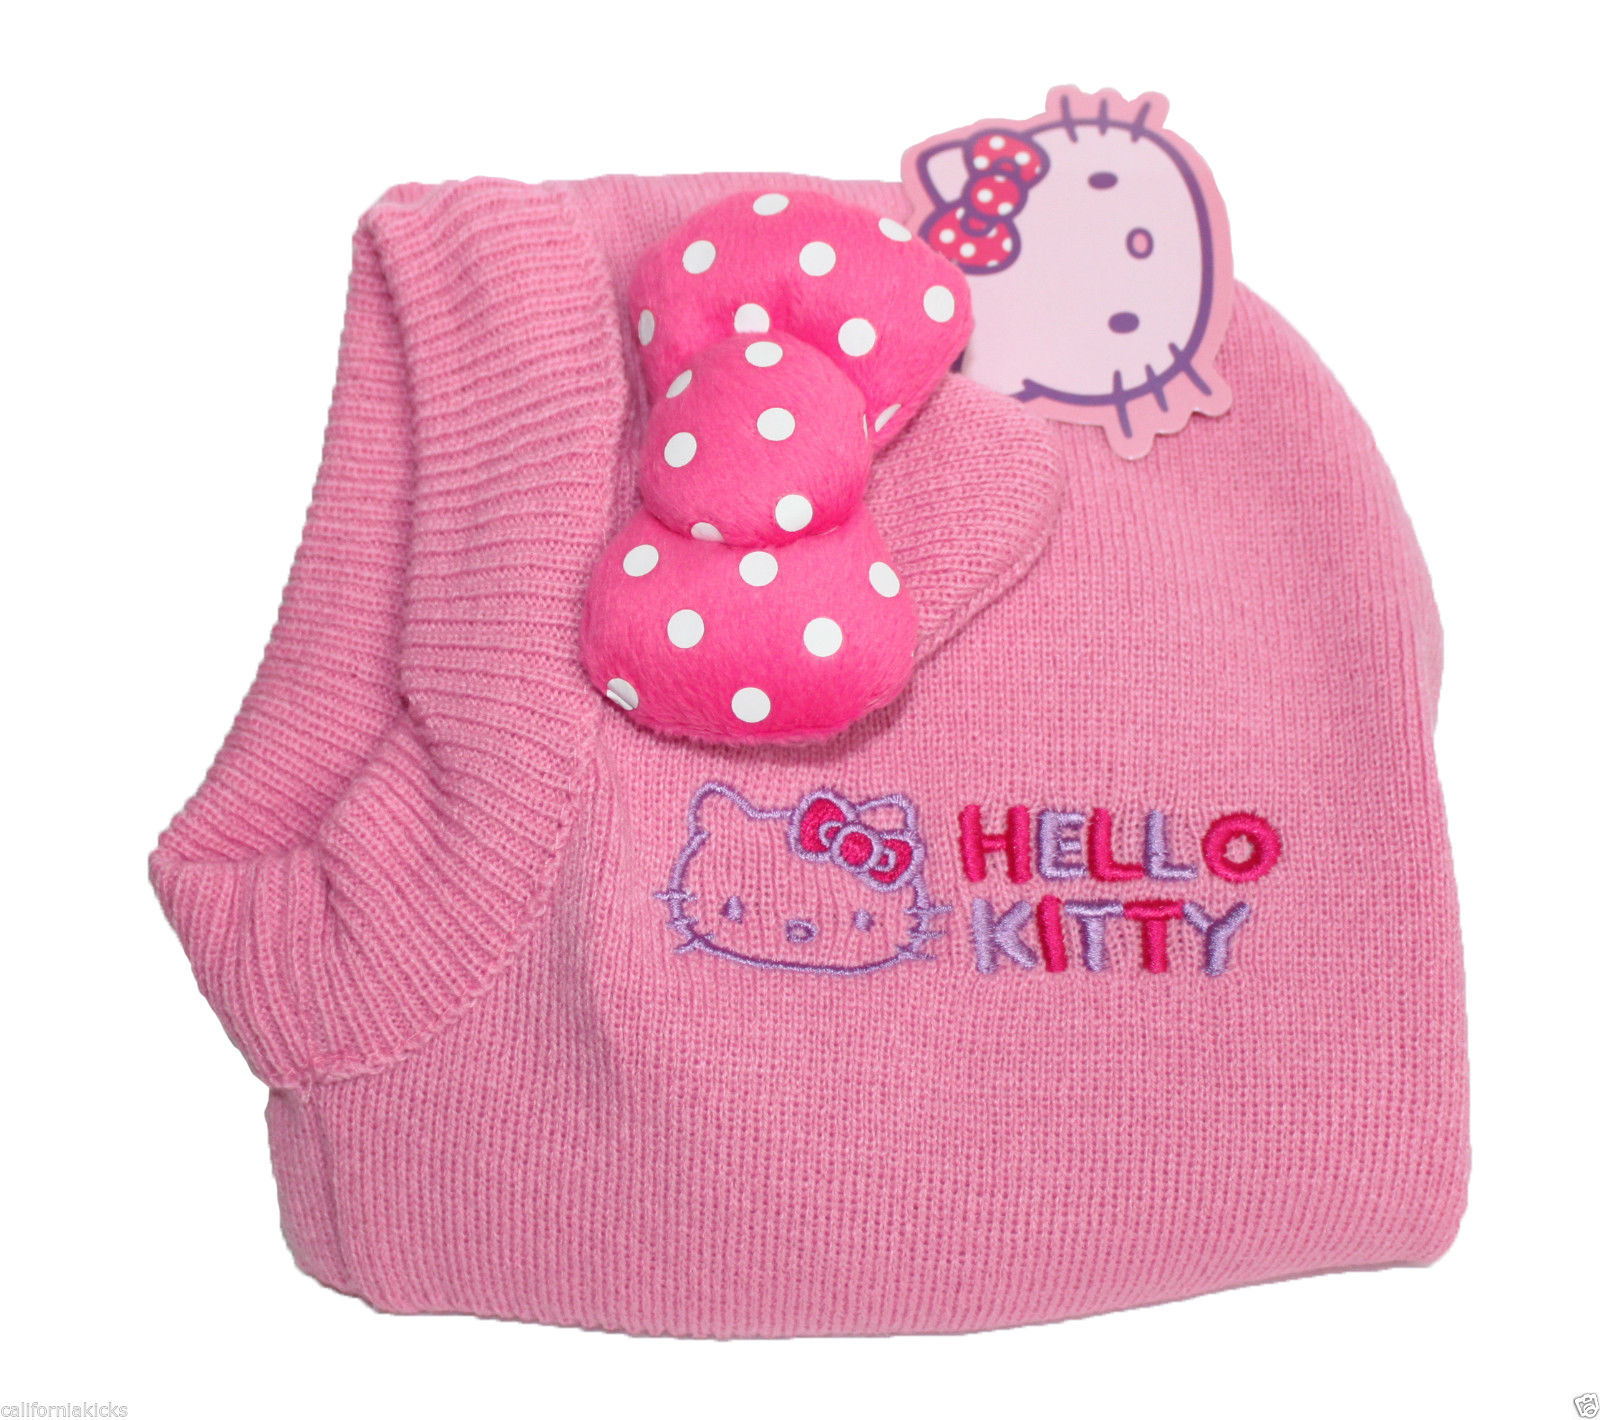 Knitting Games Hello Kitty : Sanrio hello kitty toddler knit balaclava one size fits